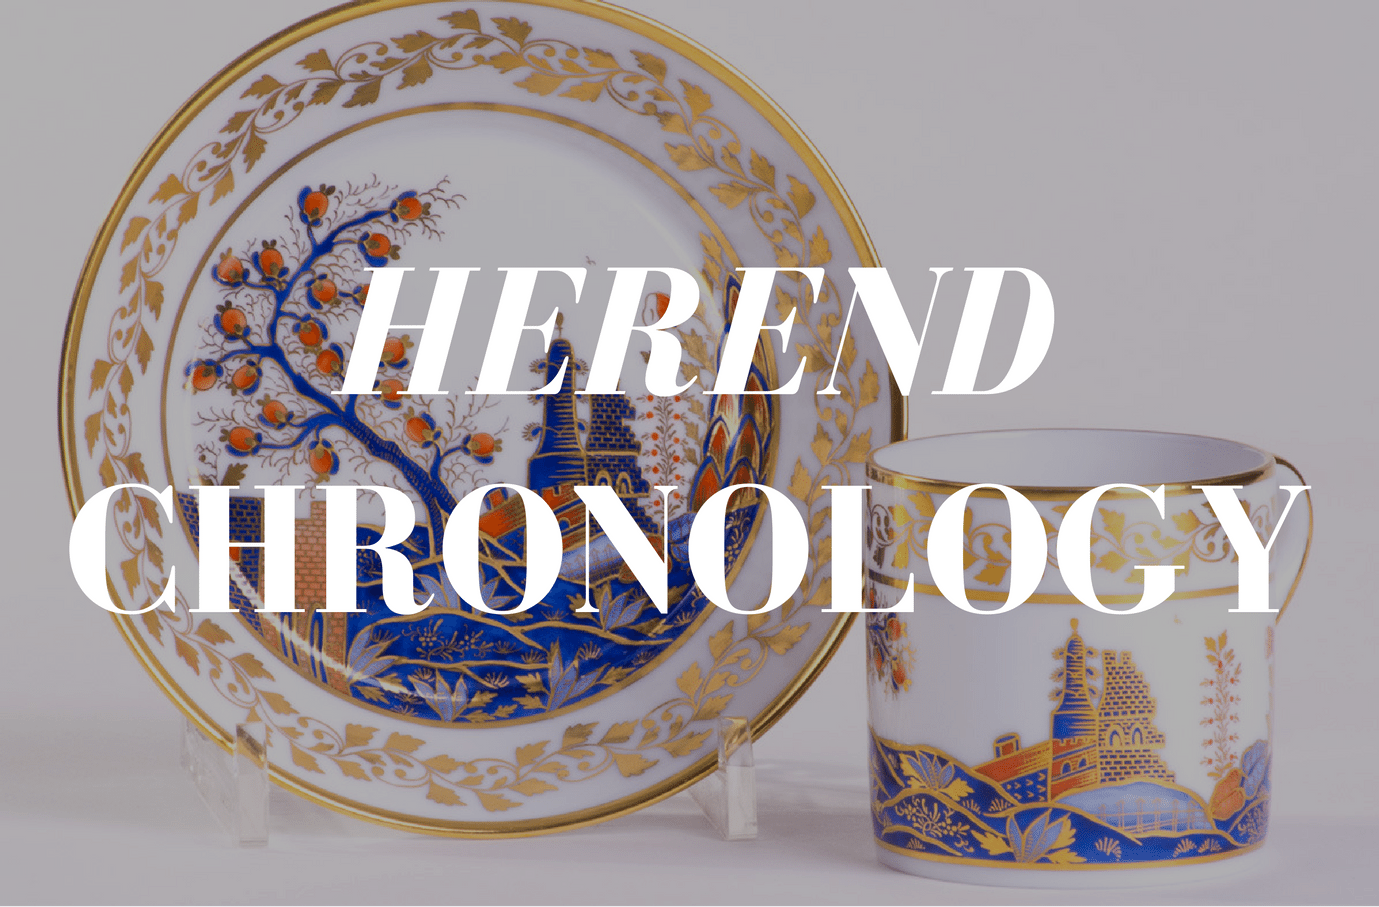 Herend Chronology - Herend Experts Blog - www.herendexperts.com